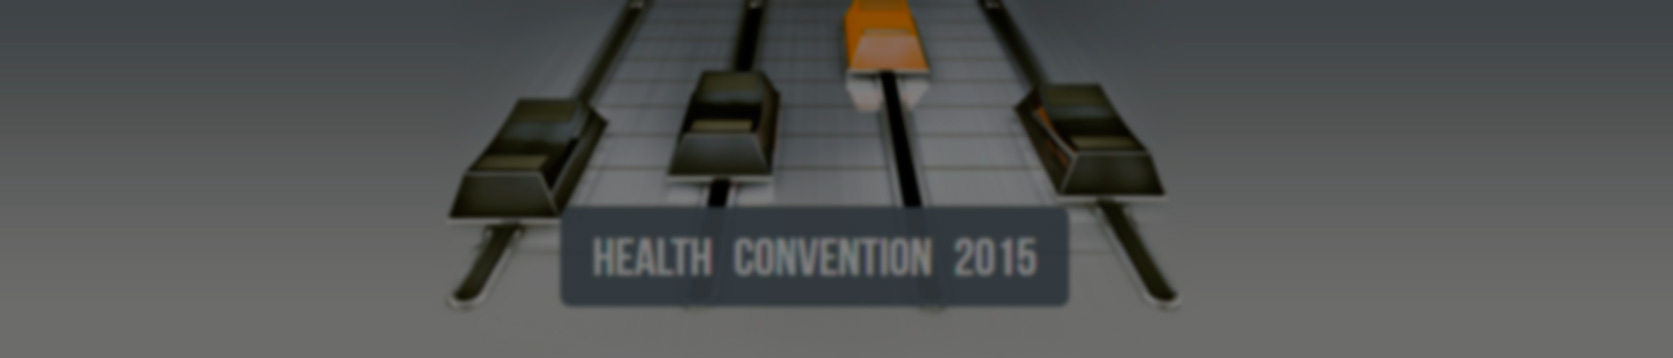 health-convention